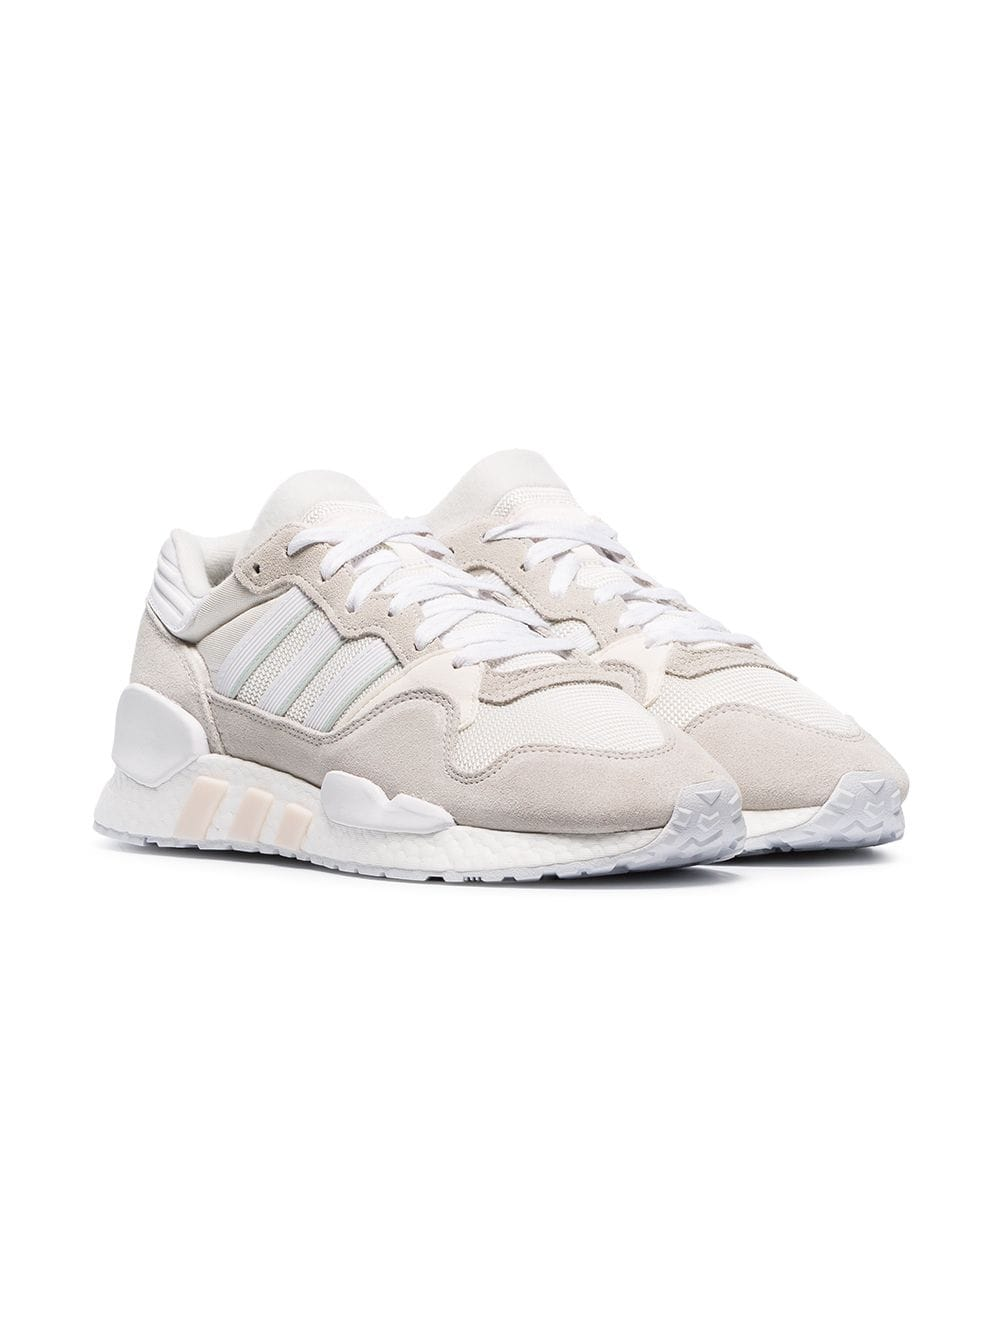 ADIDAS white never made ZX930 EQT sneakers, 340лв.